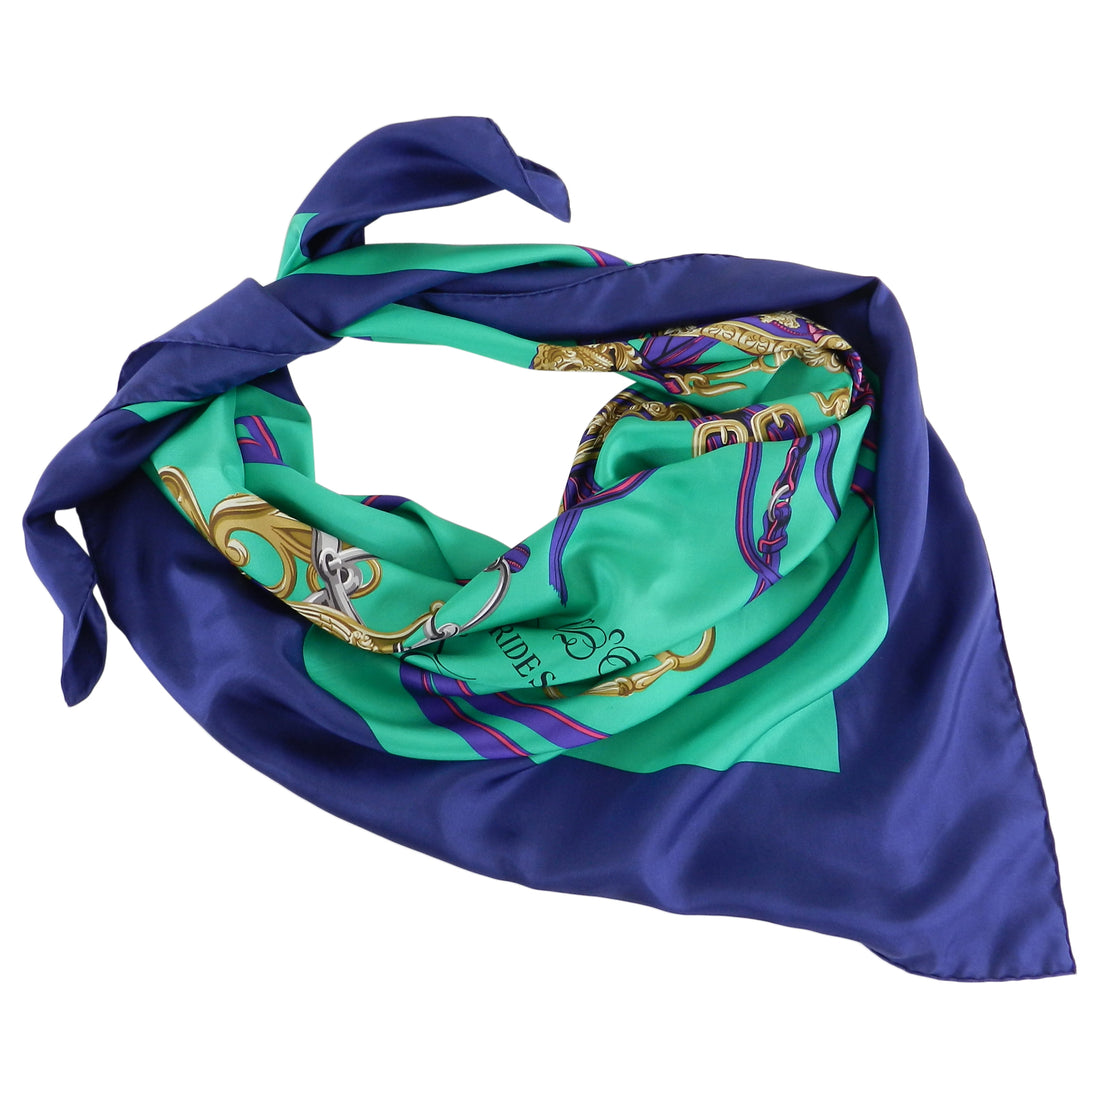 Hermes 140cm Summer Twill Silk Brides de Gala Shawl - Purple, green, fuchsia